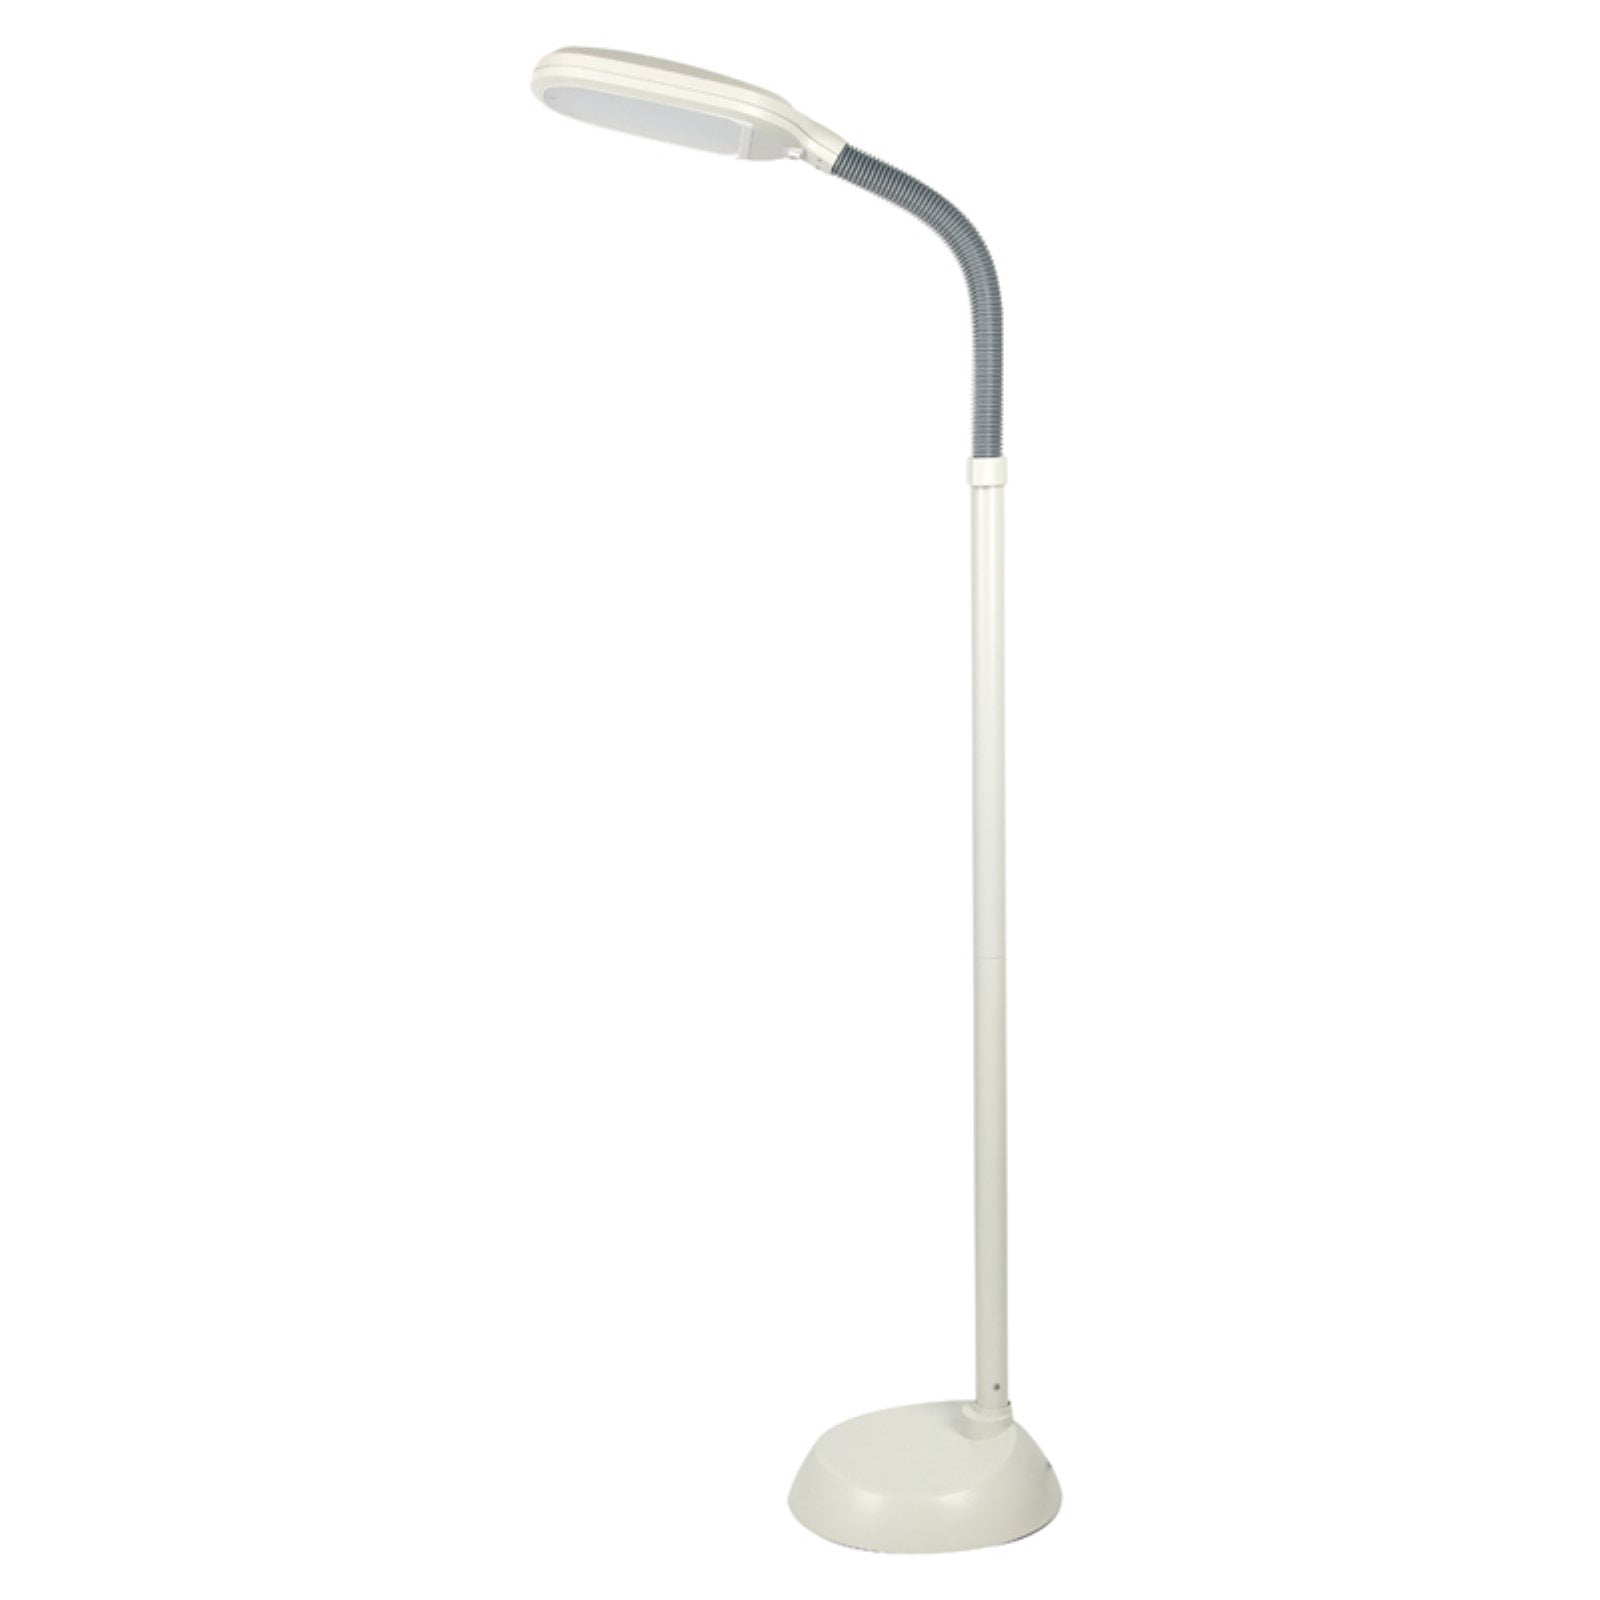 Catalina Lighting Tensor Led Natural Daylight Full